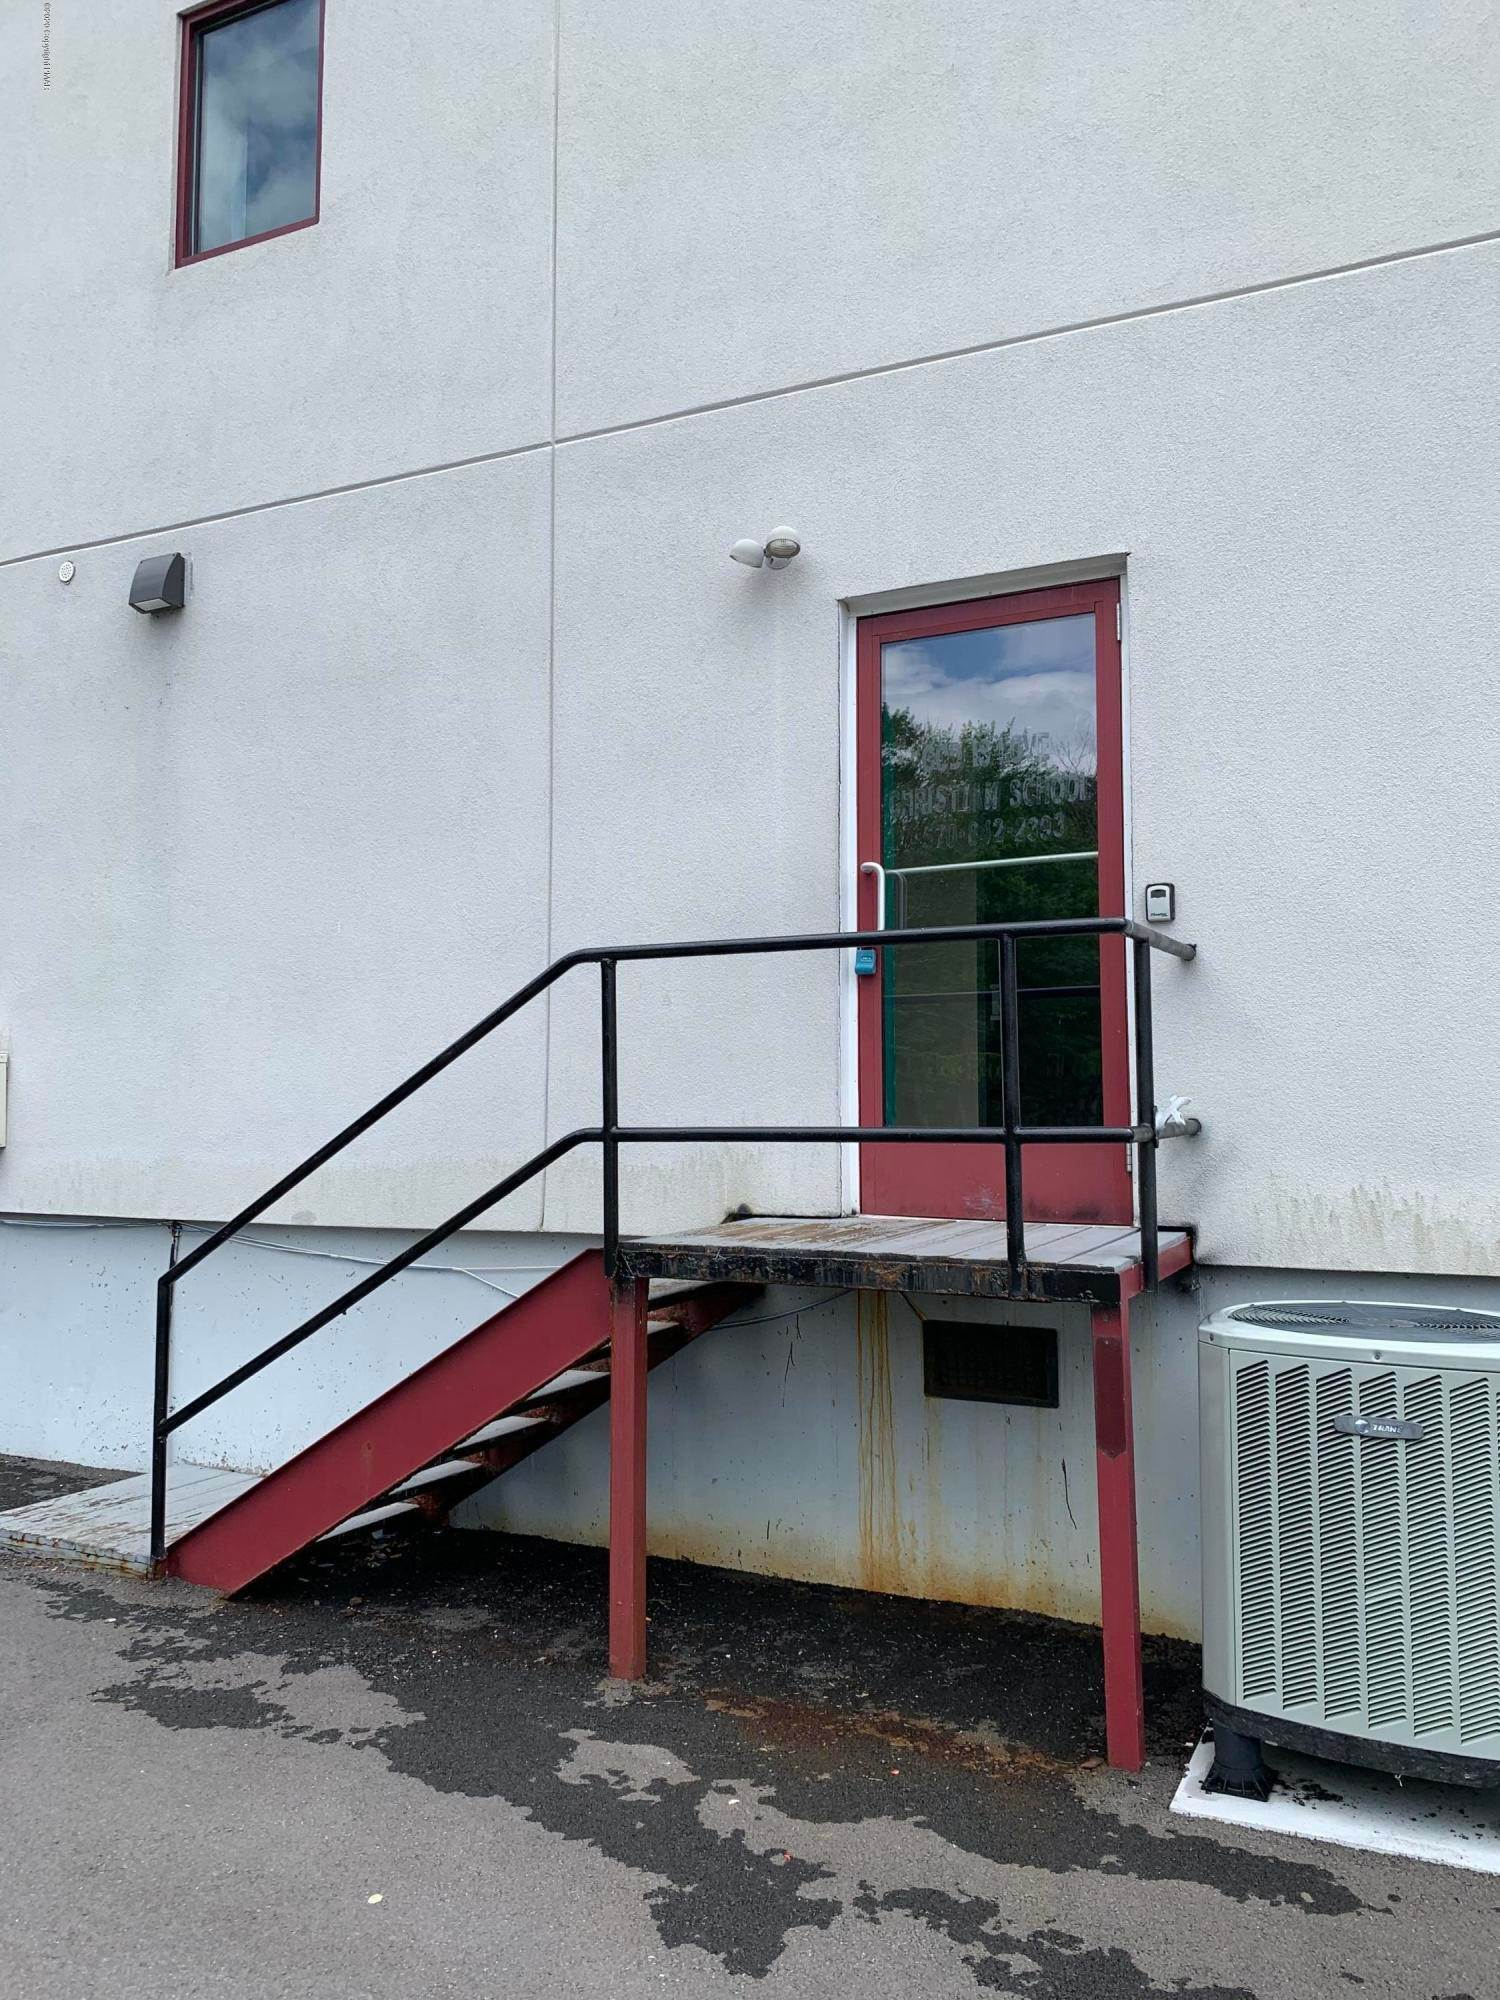 21. Commercial for Sale at 2936 Route 611, School-1 Tannersville, Pennsylvania 18372 United States